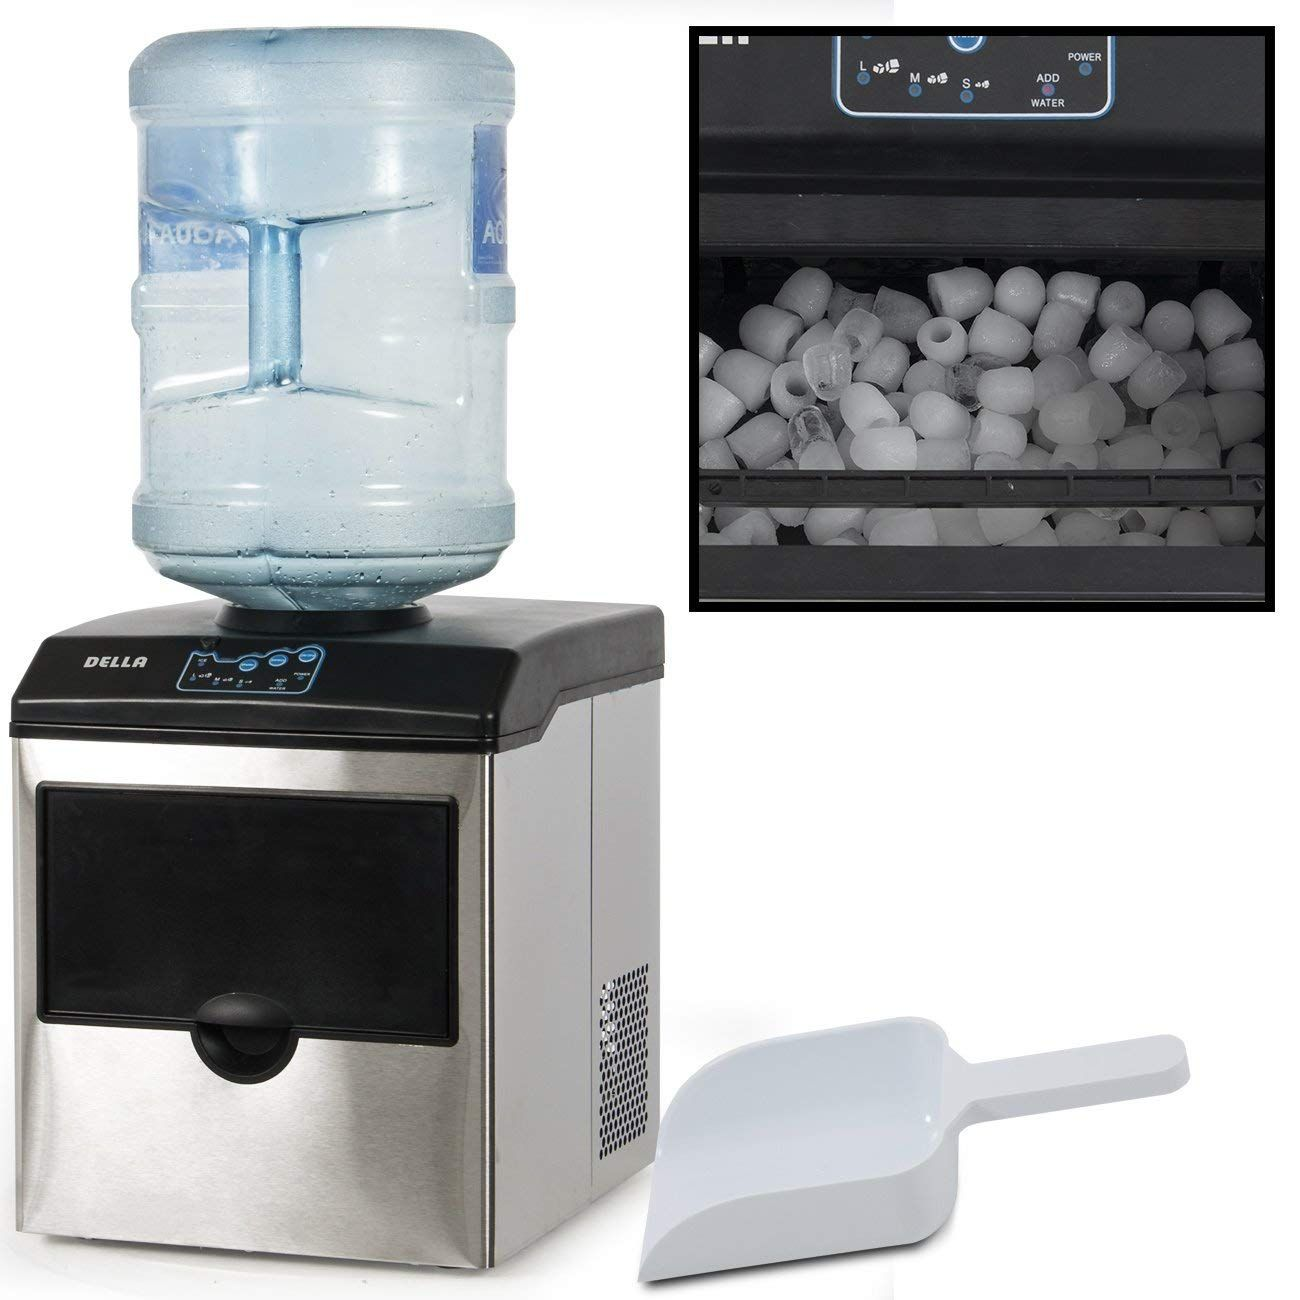 Best Countertop Ice Maker With A Water Dispenser The Best Of Both Worlds Ice Maker Machine Water Dispenser Ice Maker